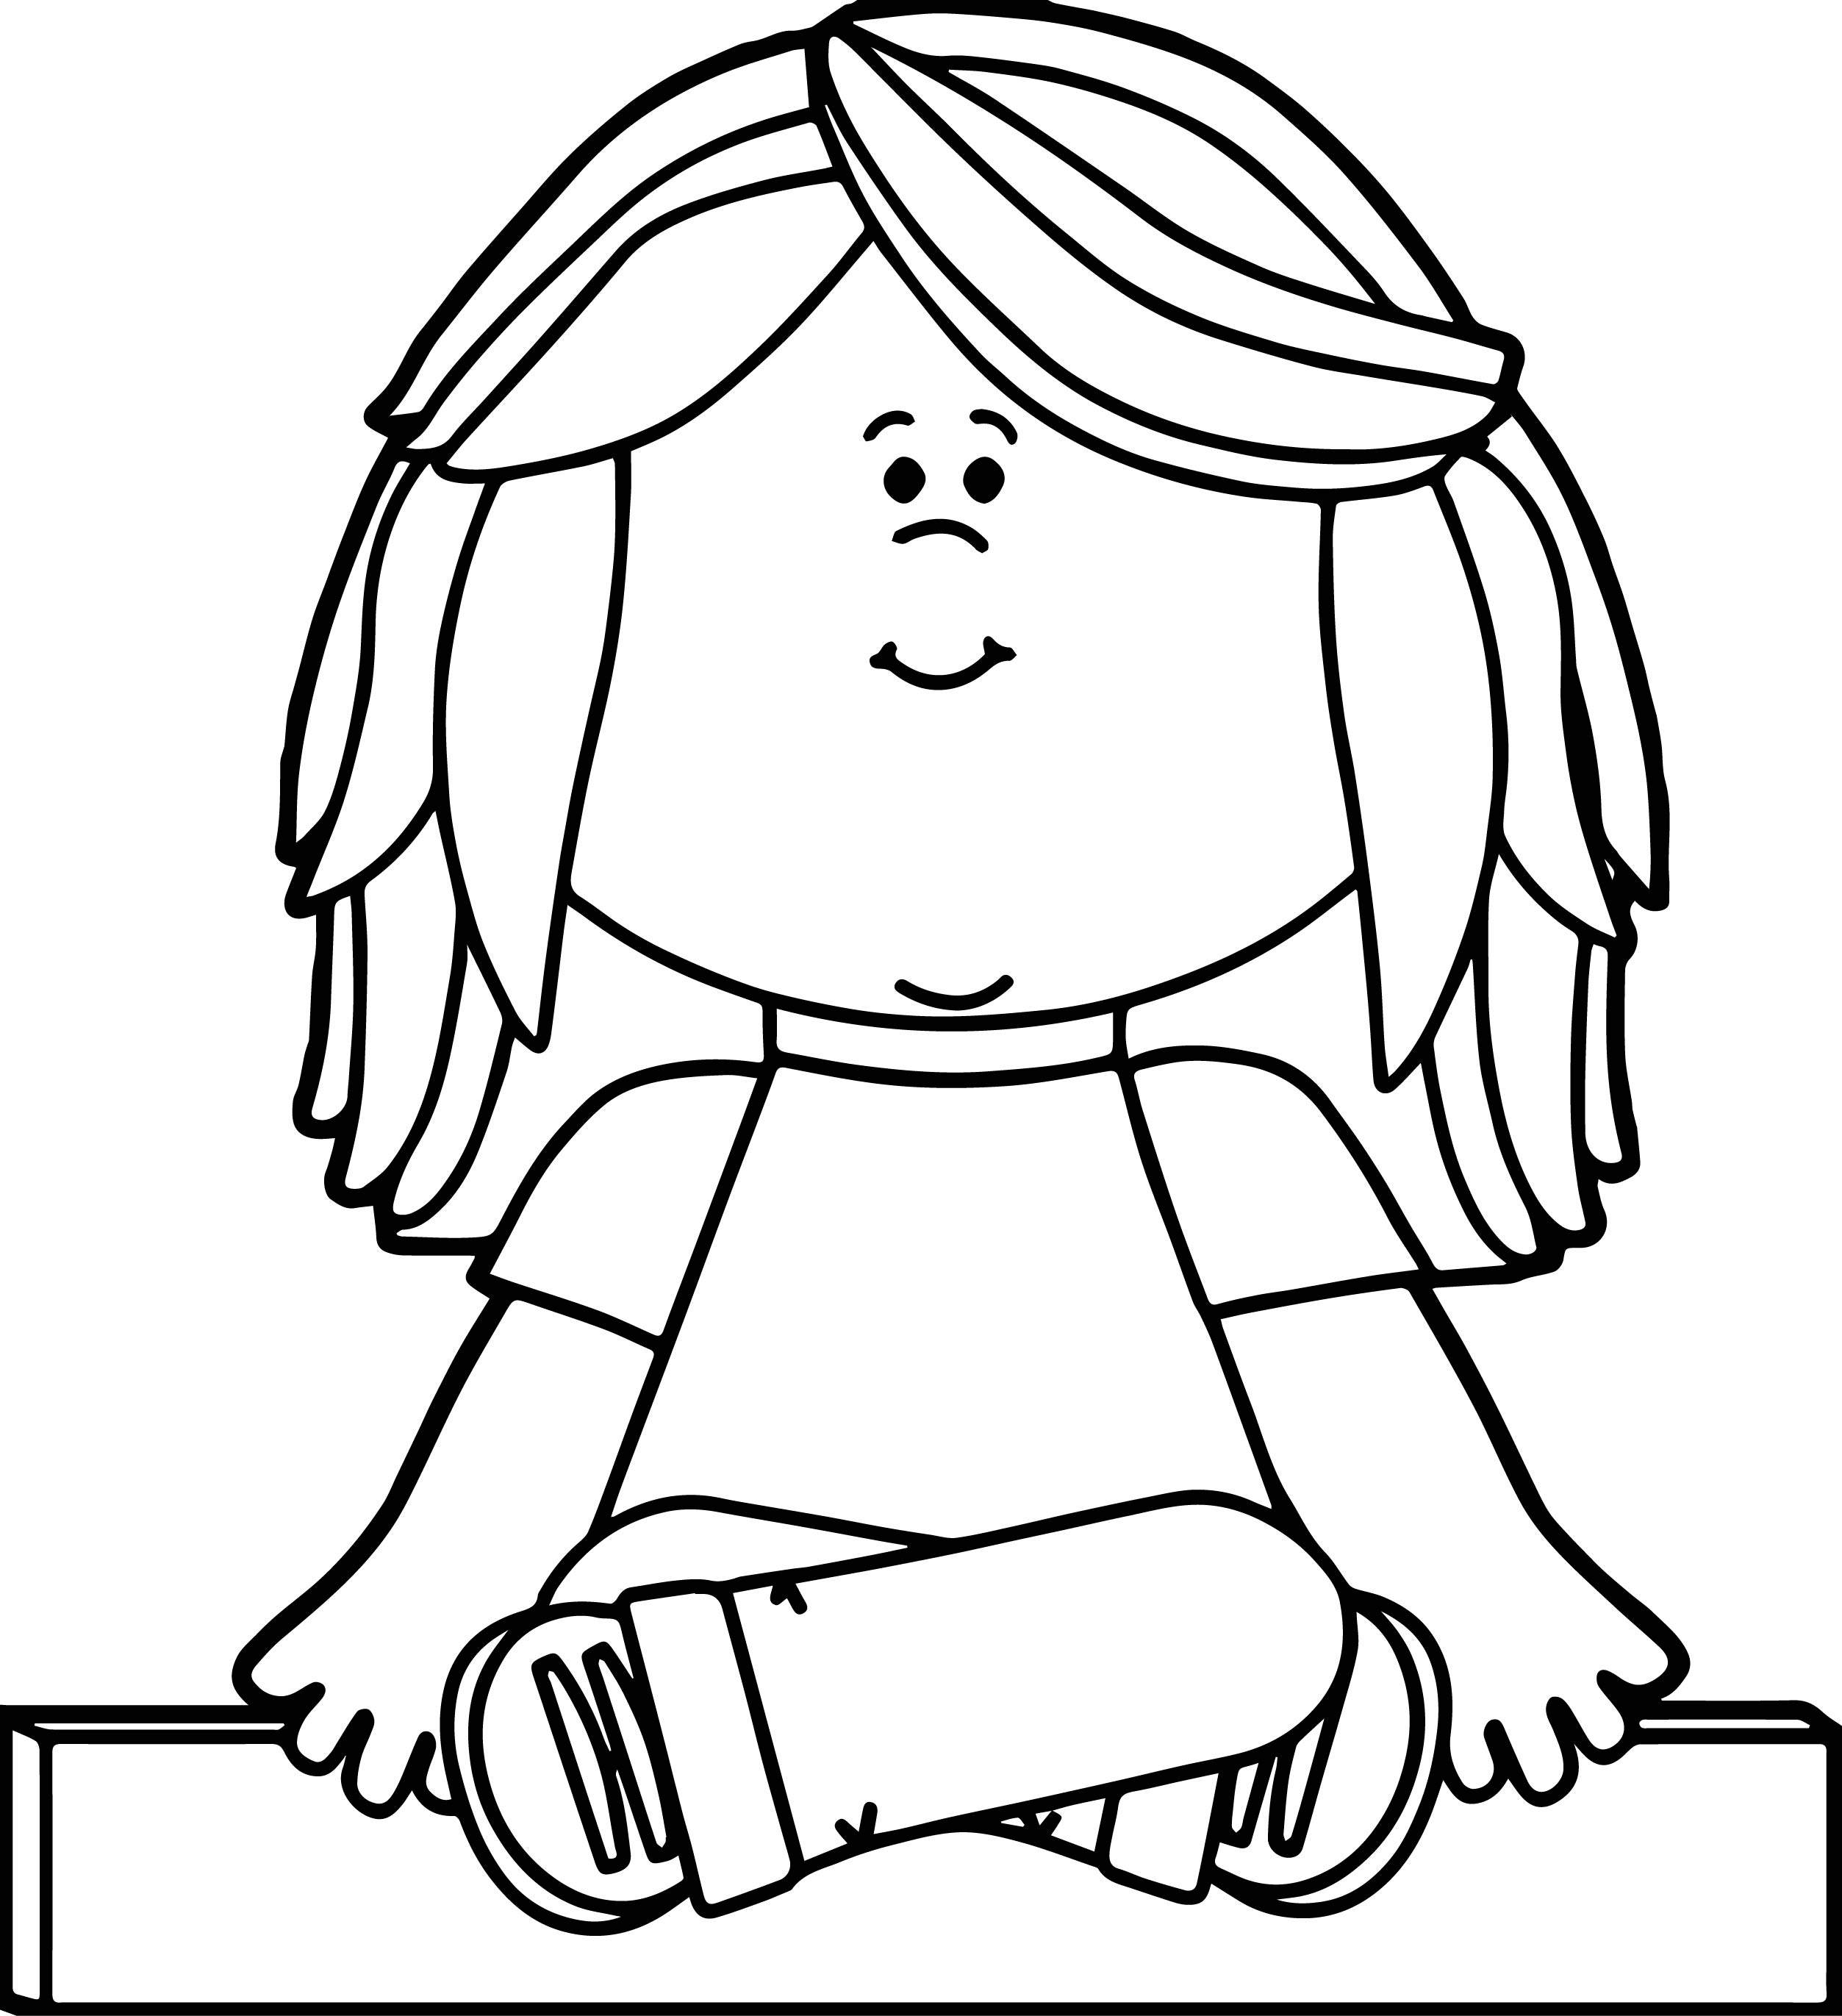 Kids Sitting Criss Cross Applesauce Sketch Coloring Page